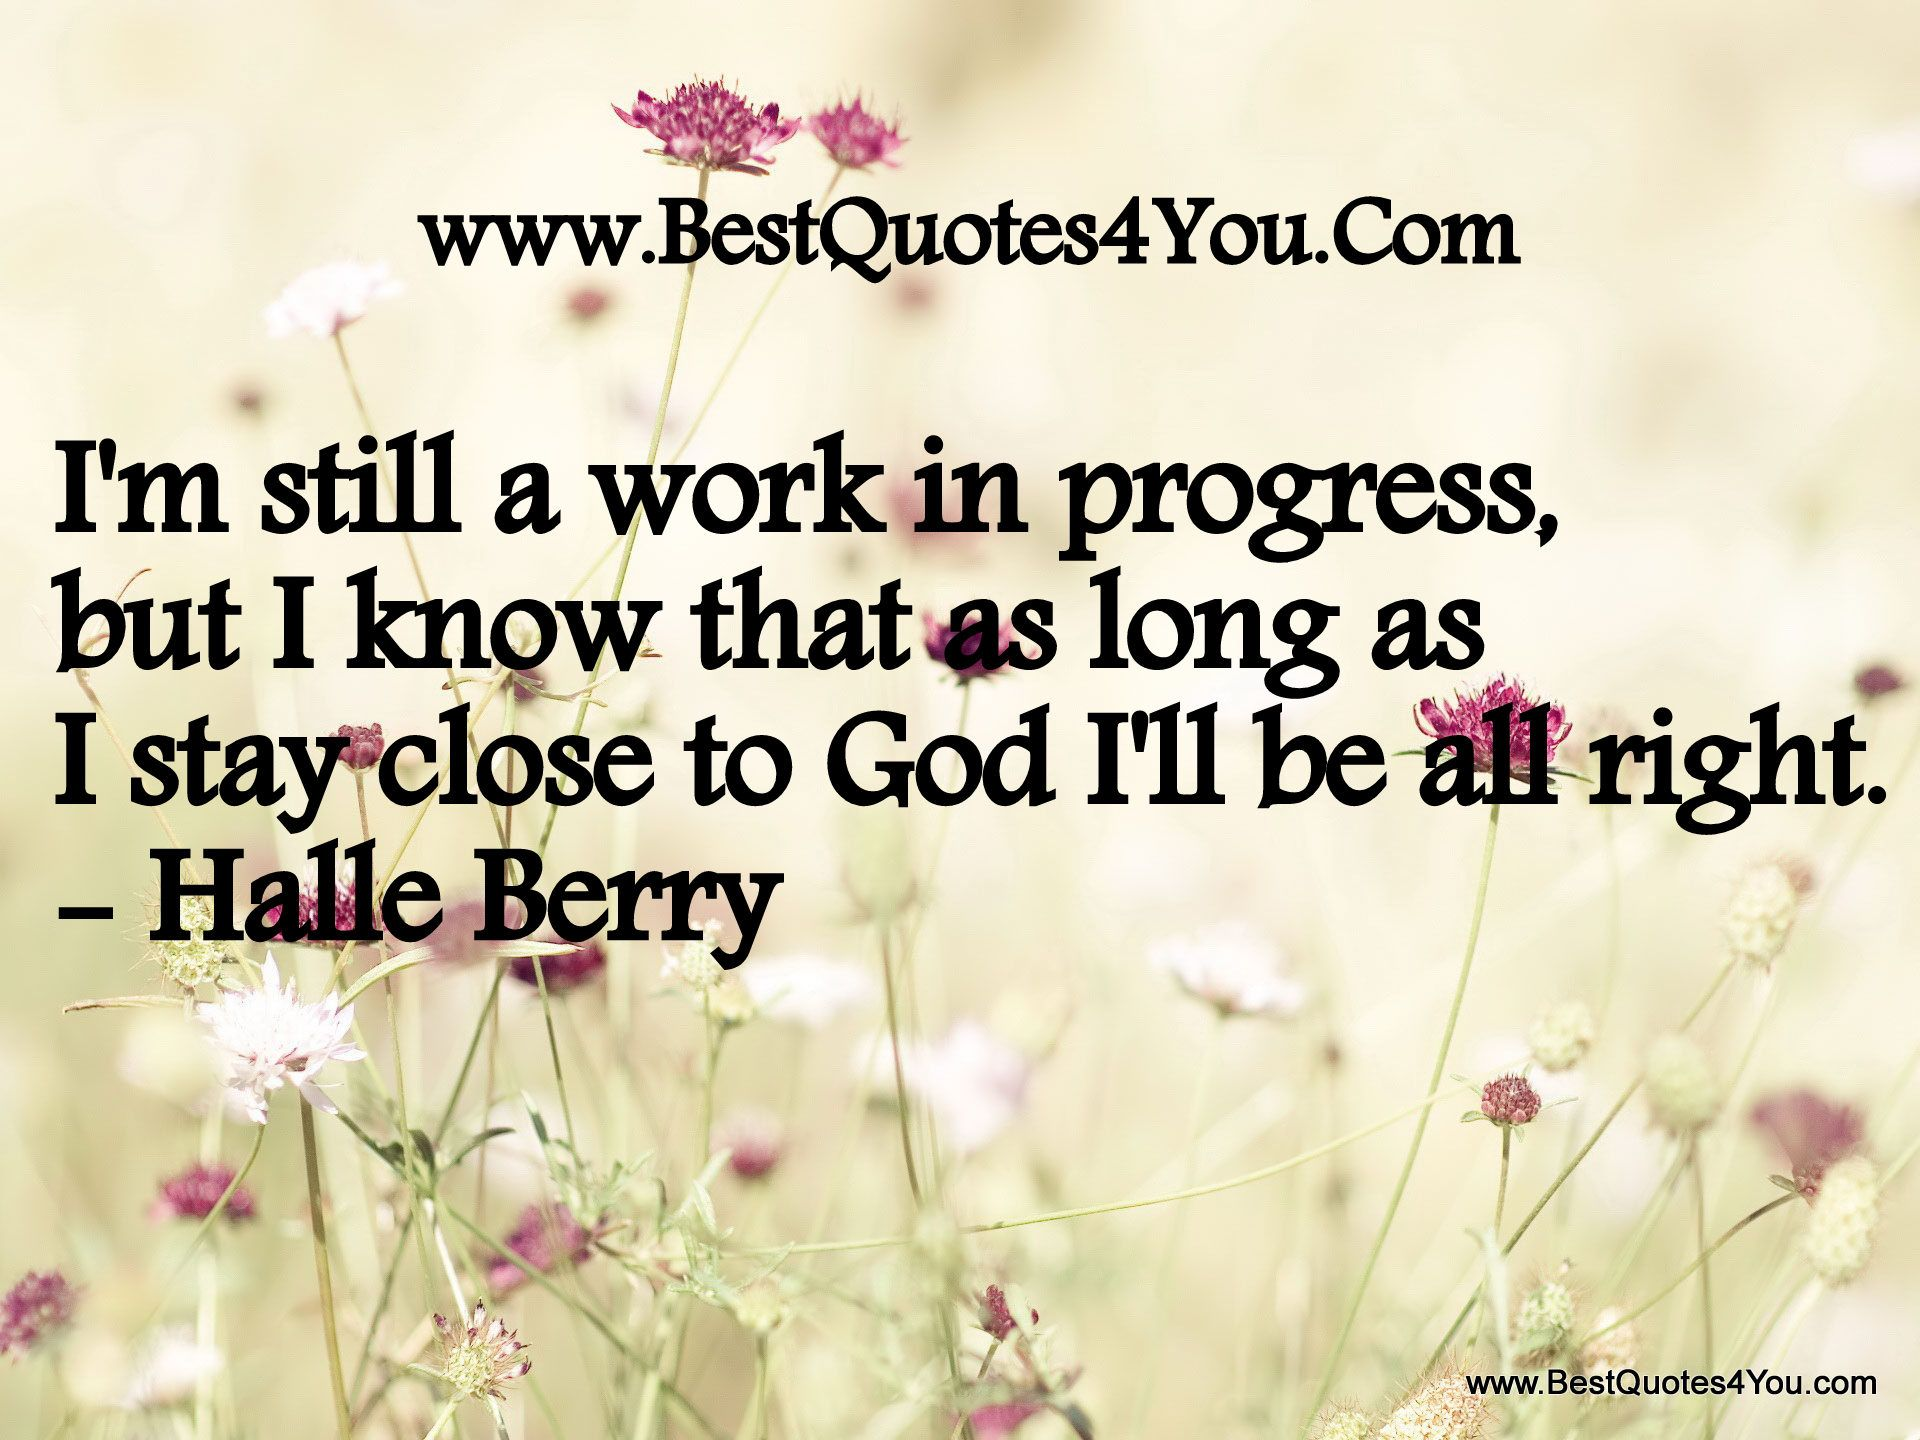 I'm Still A Work In Progress, But I Know That As Long As I